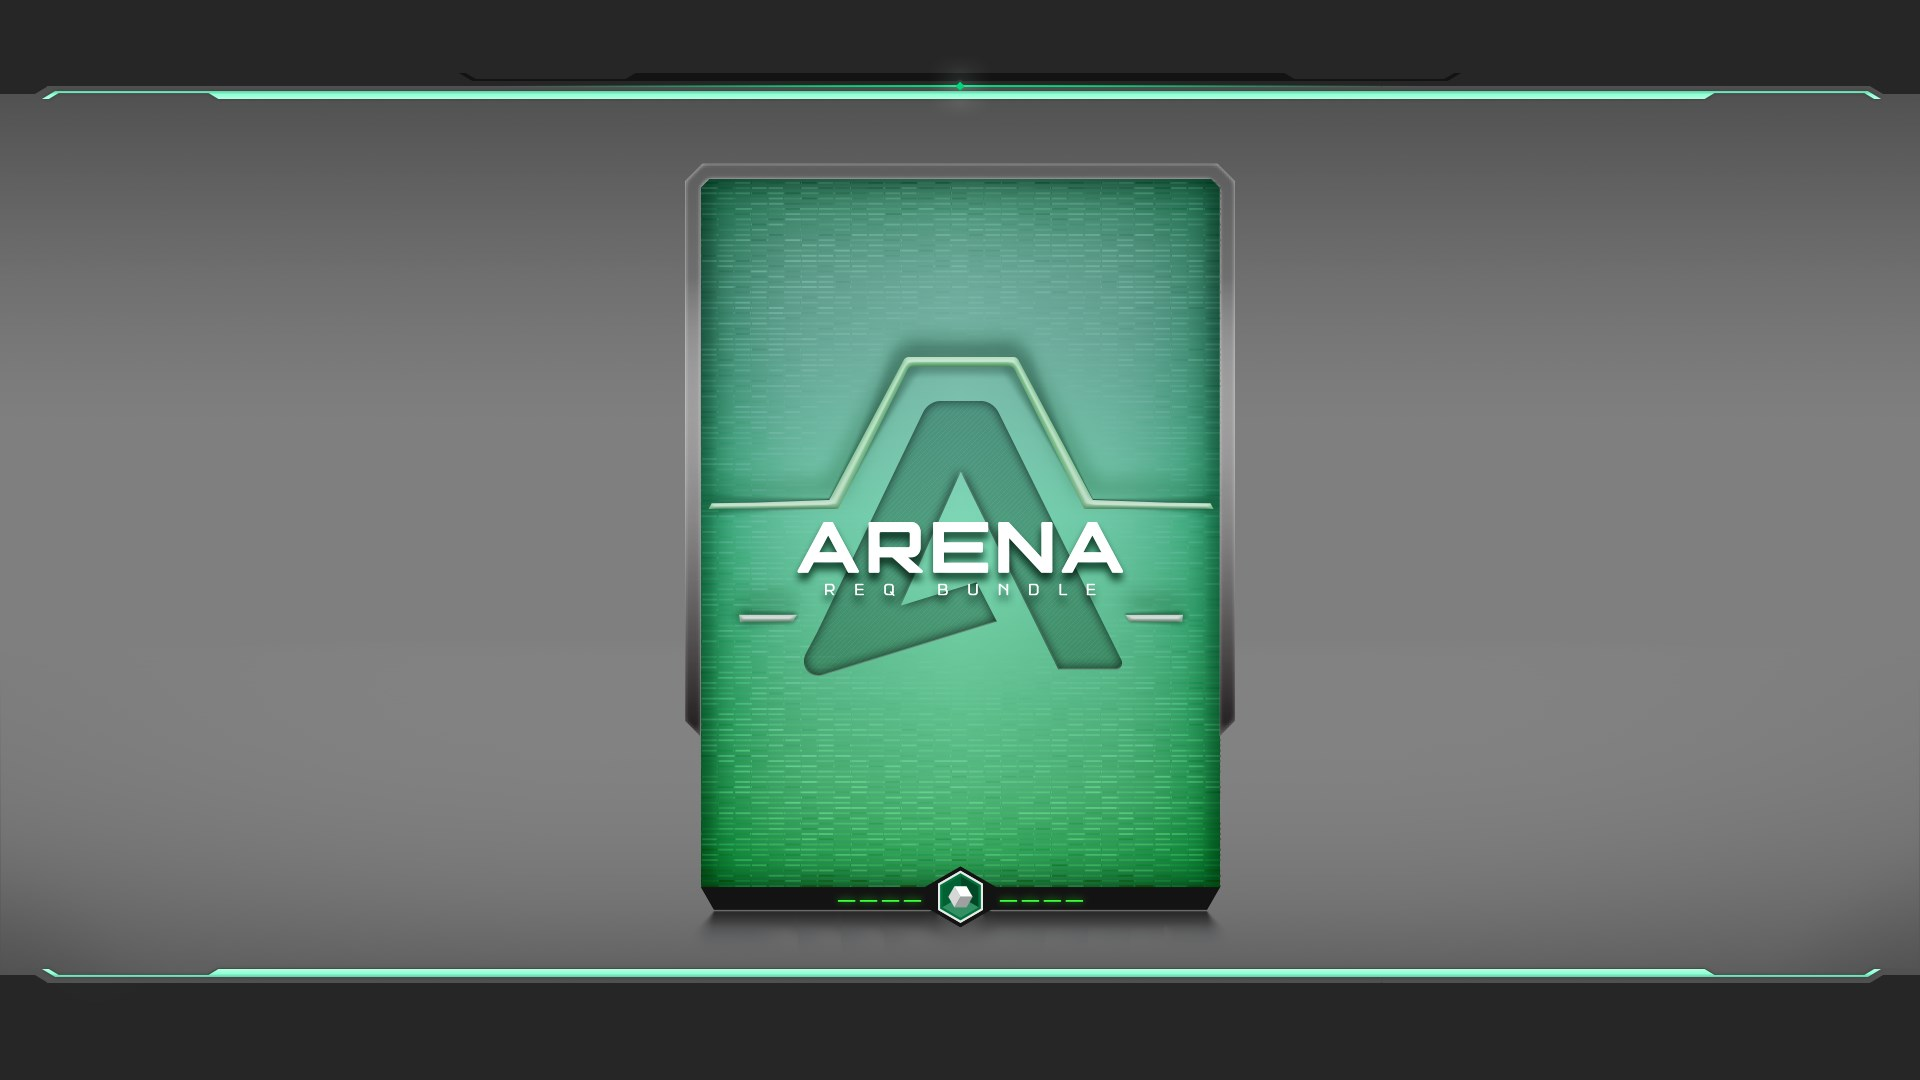 Halo 5: Guardians – Arena REQ Bundle